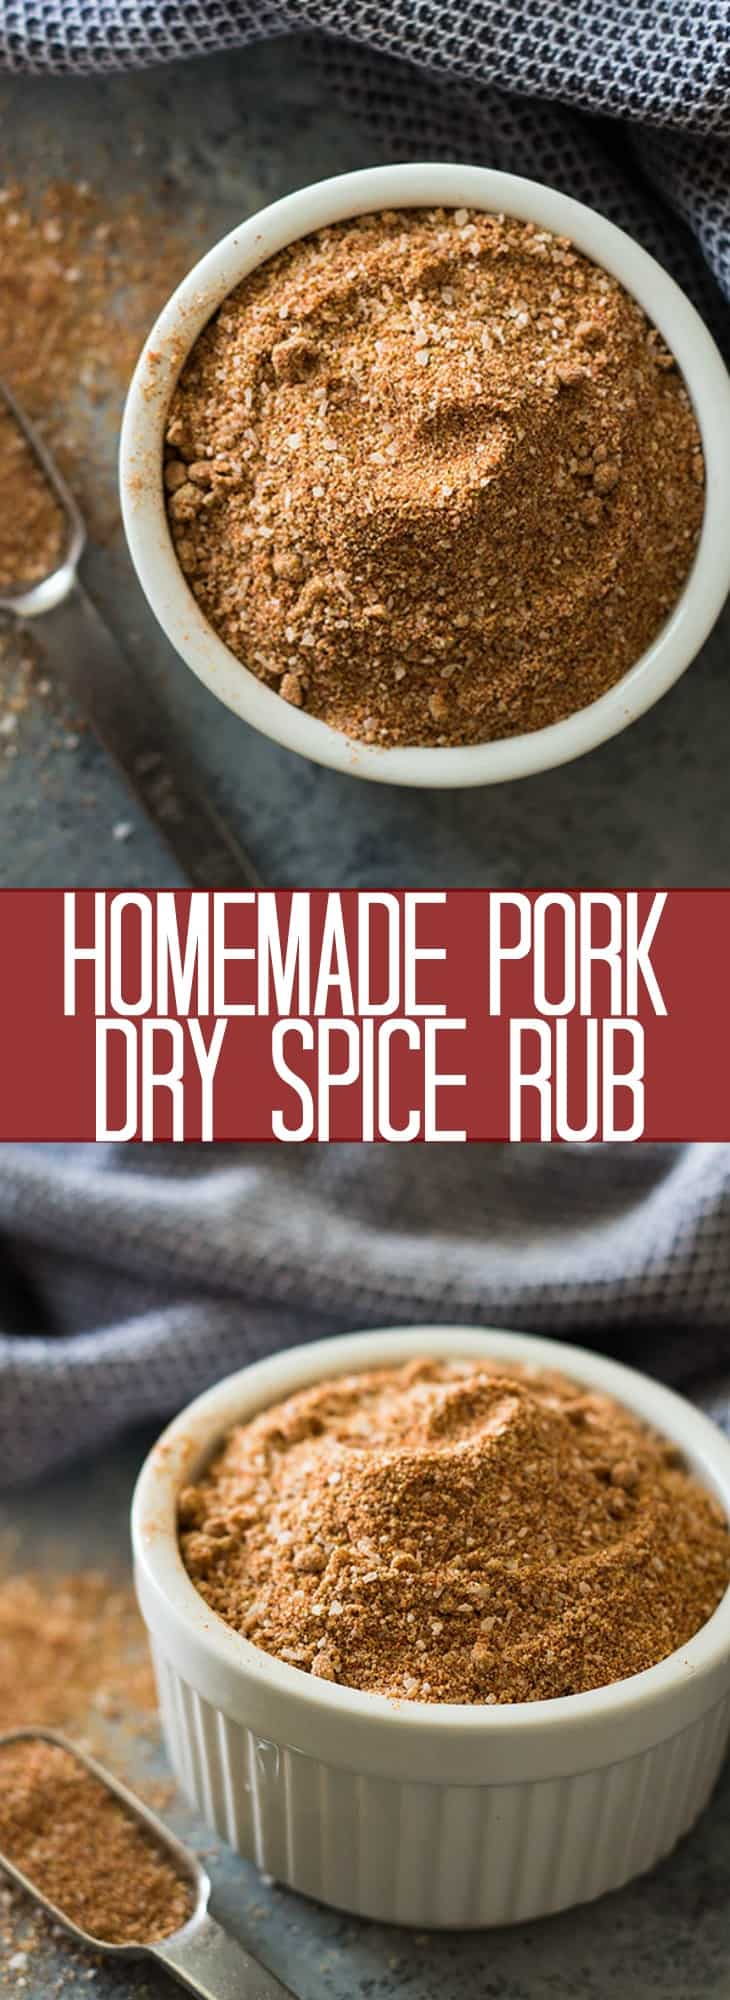 This Homemade Pork Dry Spice Rub is the perfect balance of sweet and spicy, it also goes great on chicken and is perfect for grilling!